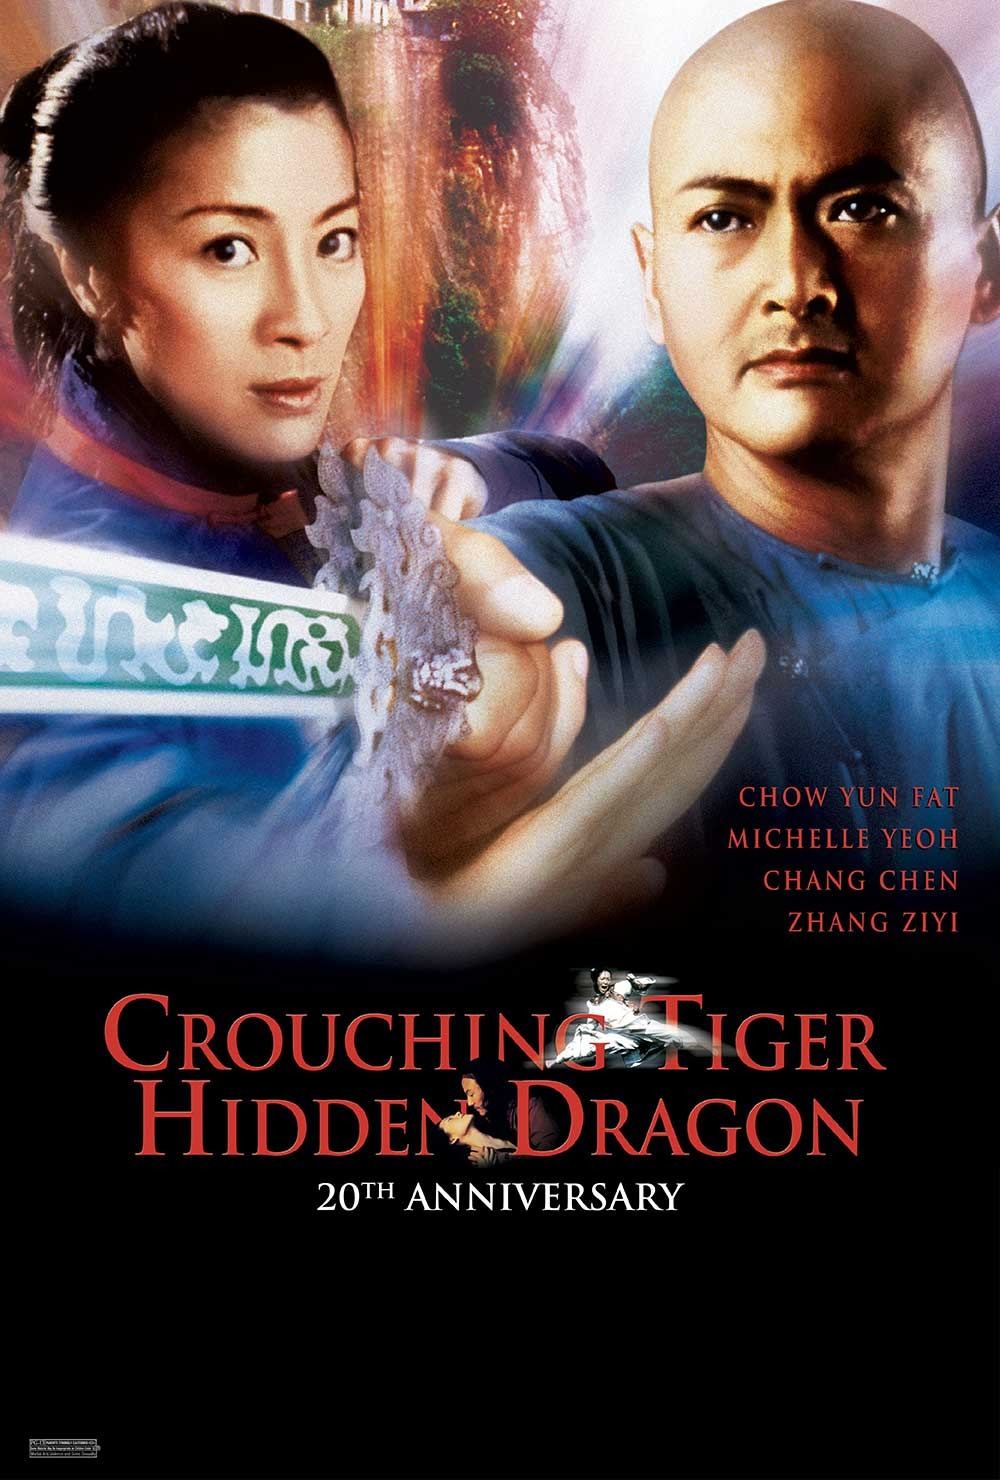 Crouching Tiger, Hidden Dragon 20th Anniversary Poster